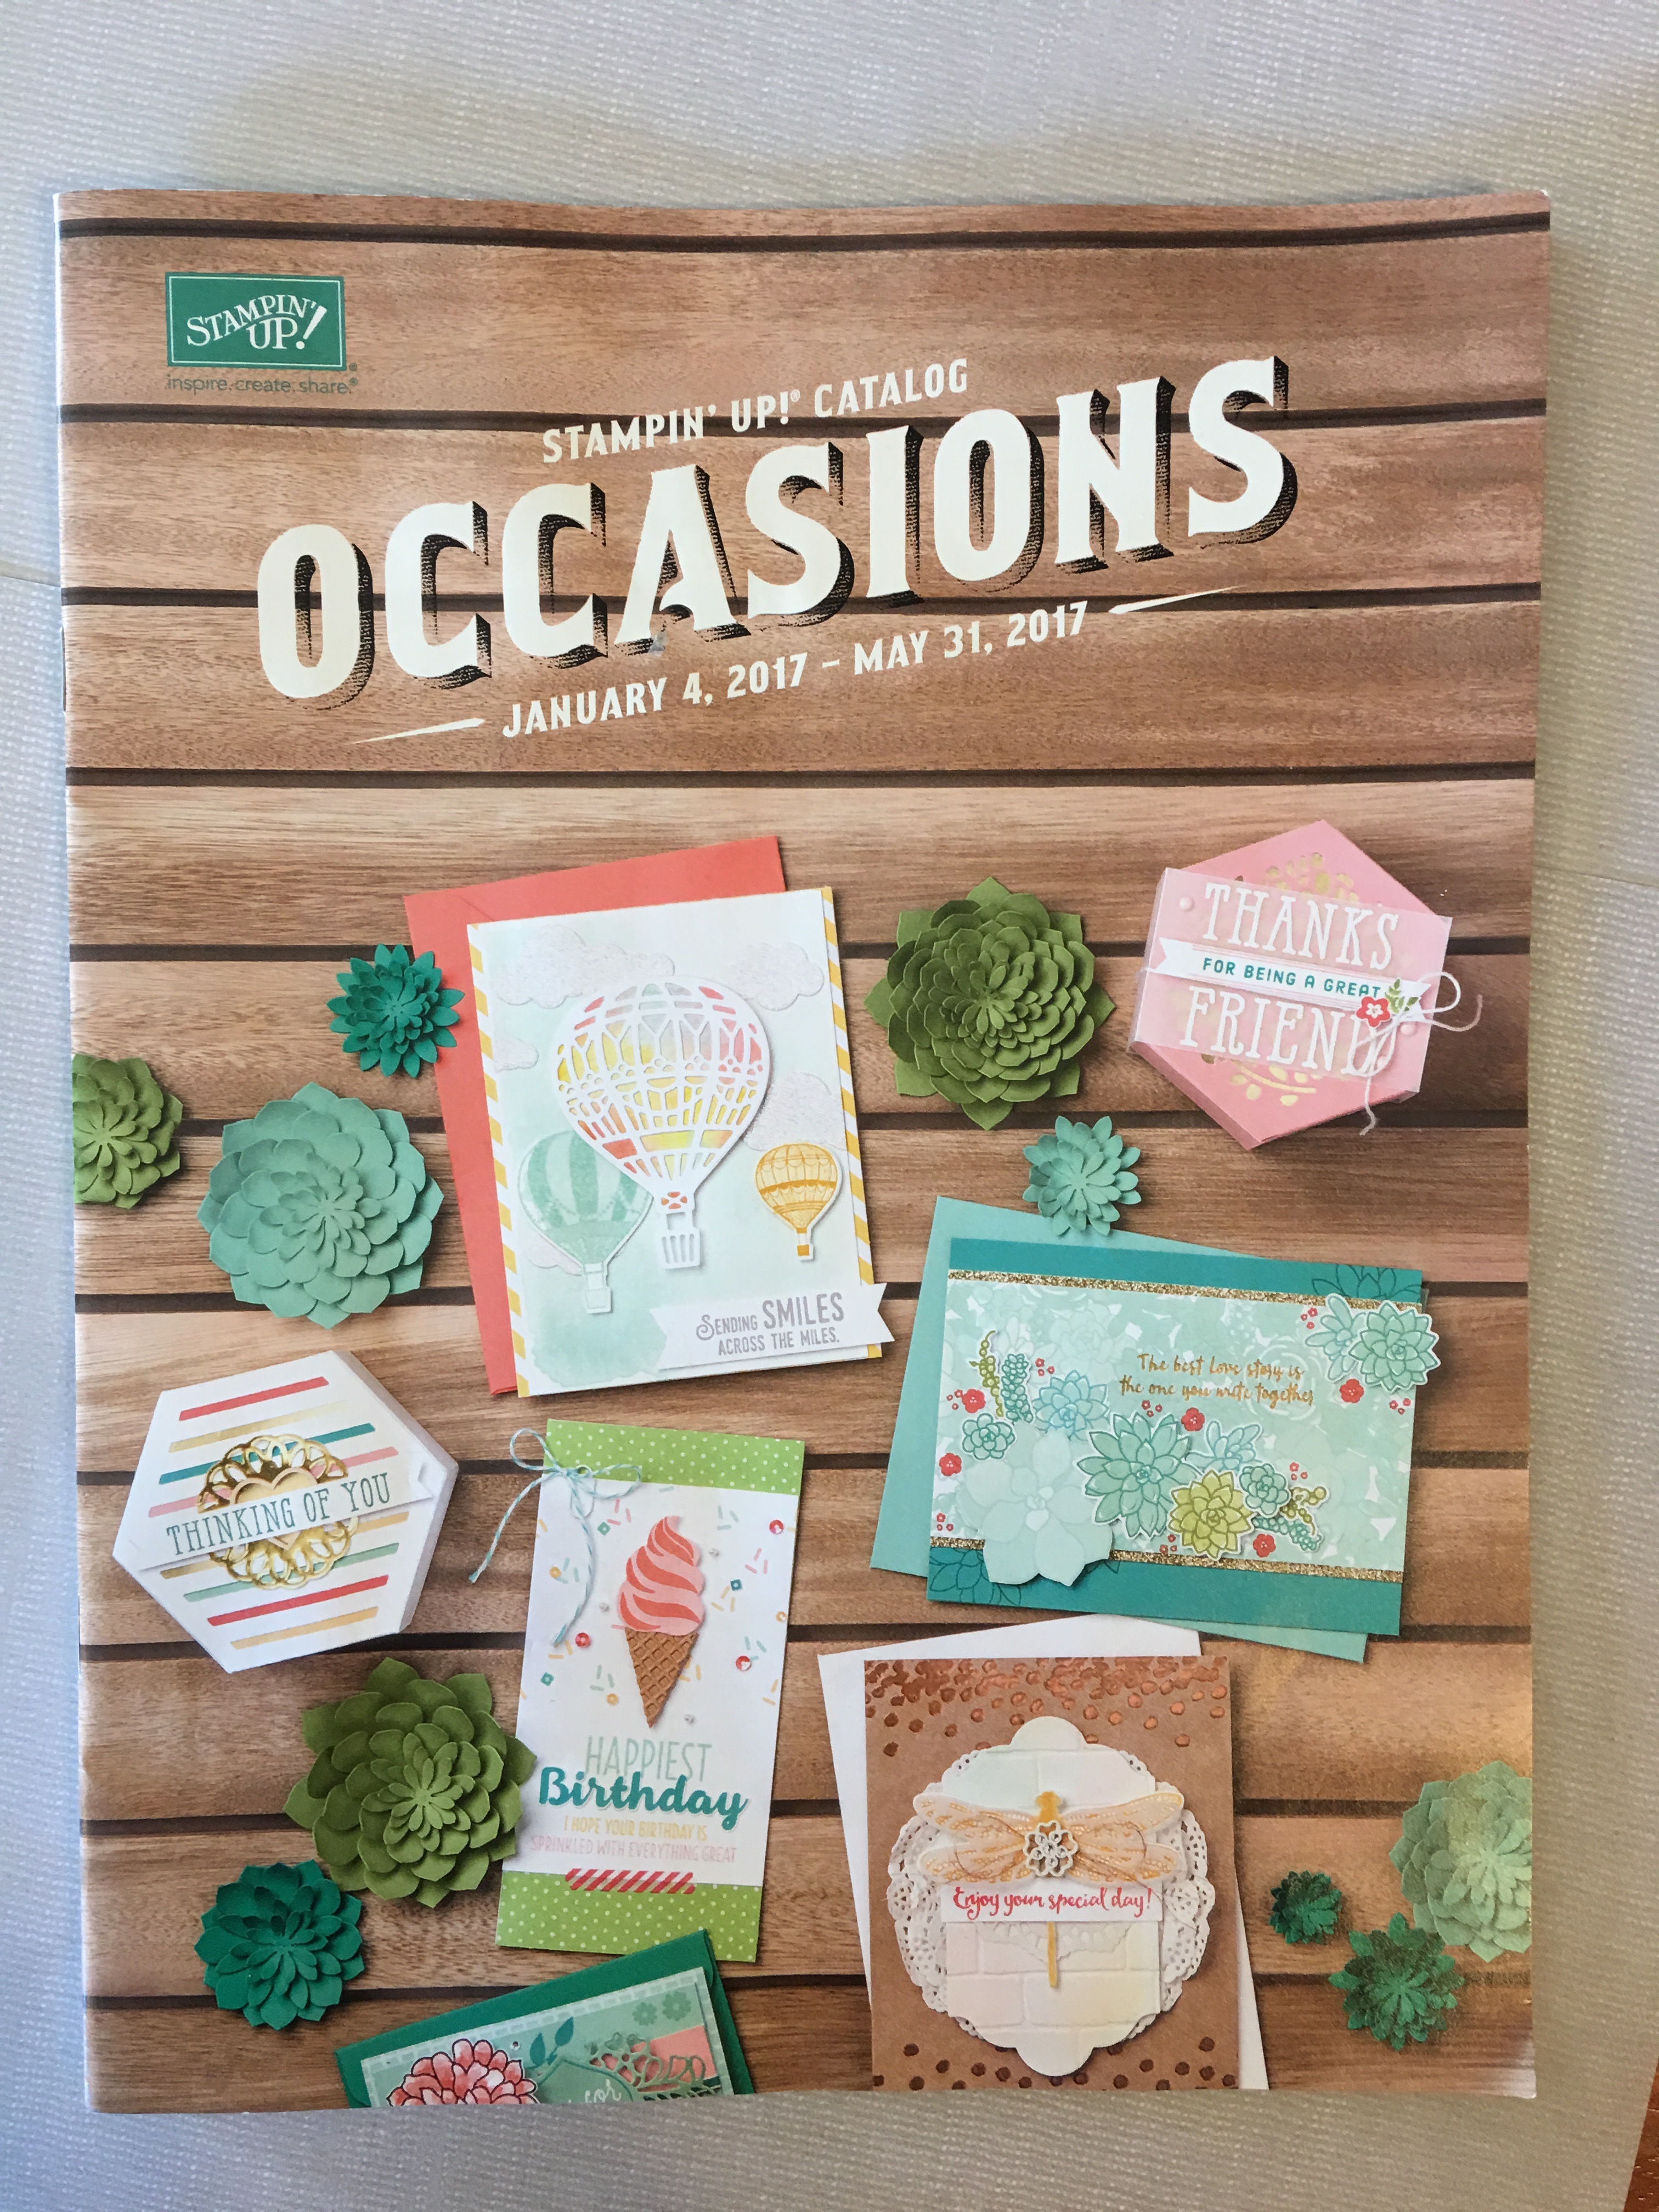 2016 Occasions Catalog